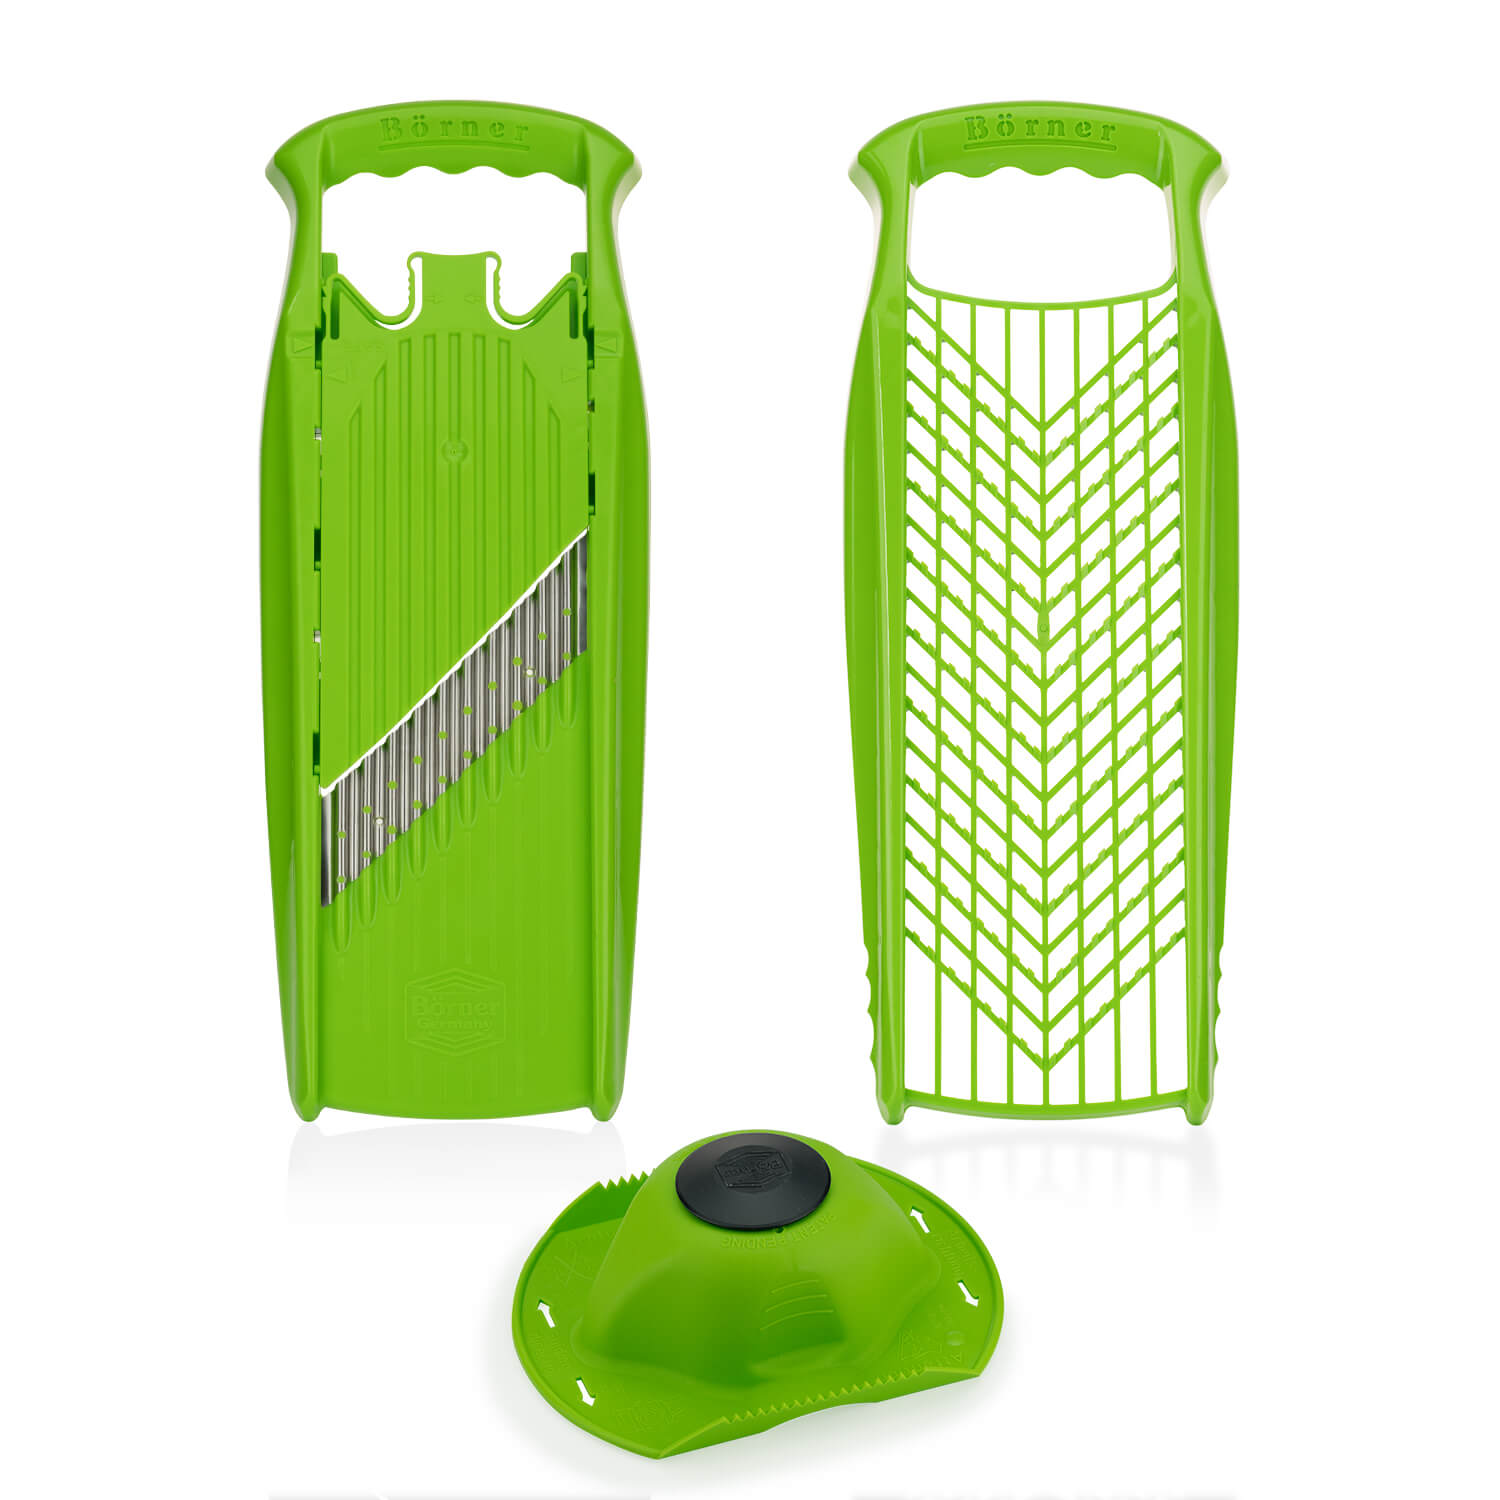 Borner Grater and Waffle Cutter Powerline - food holder included